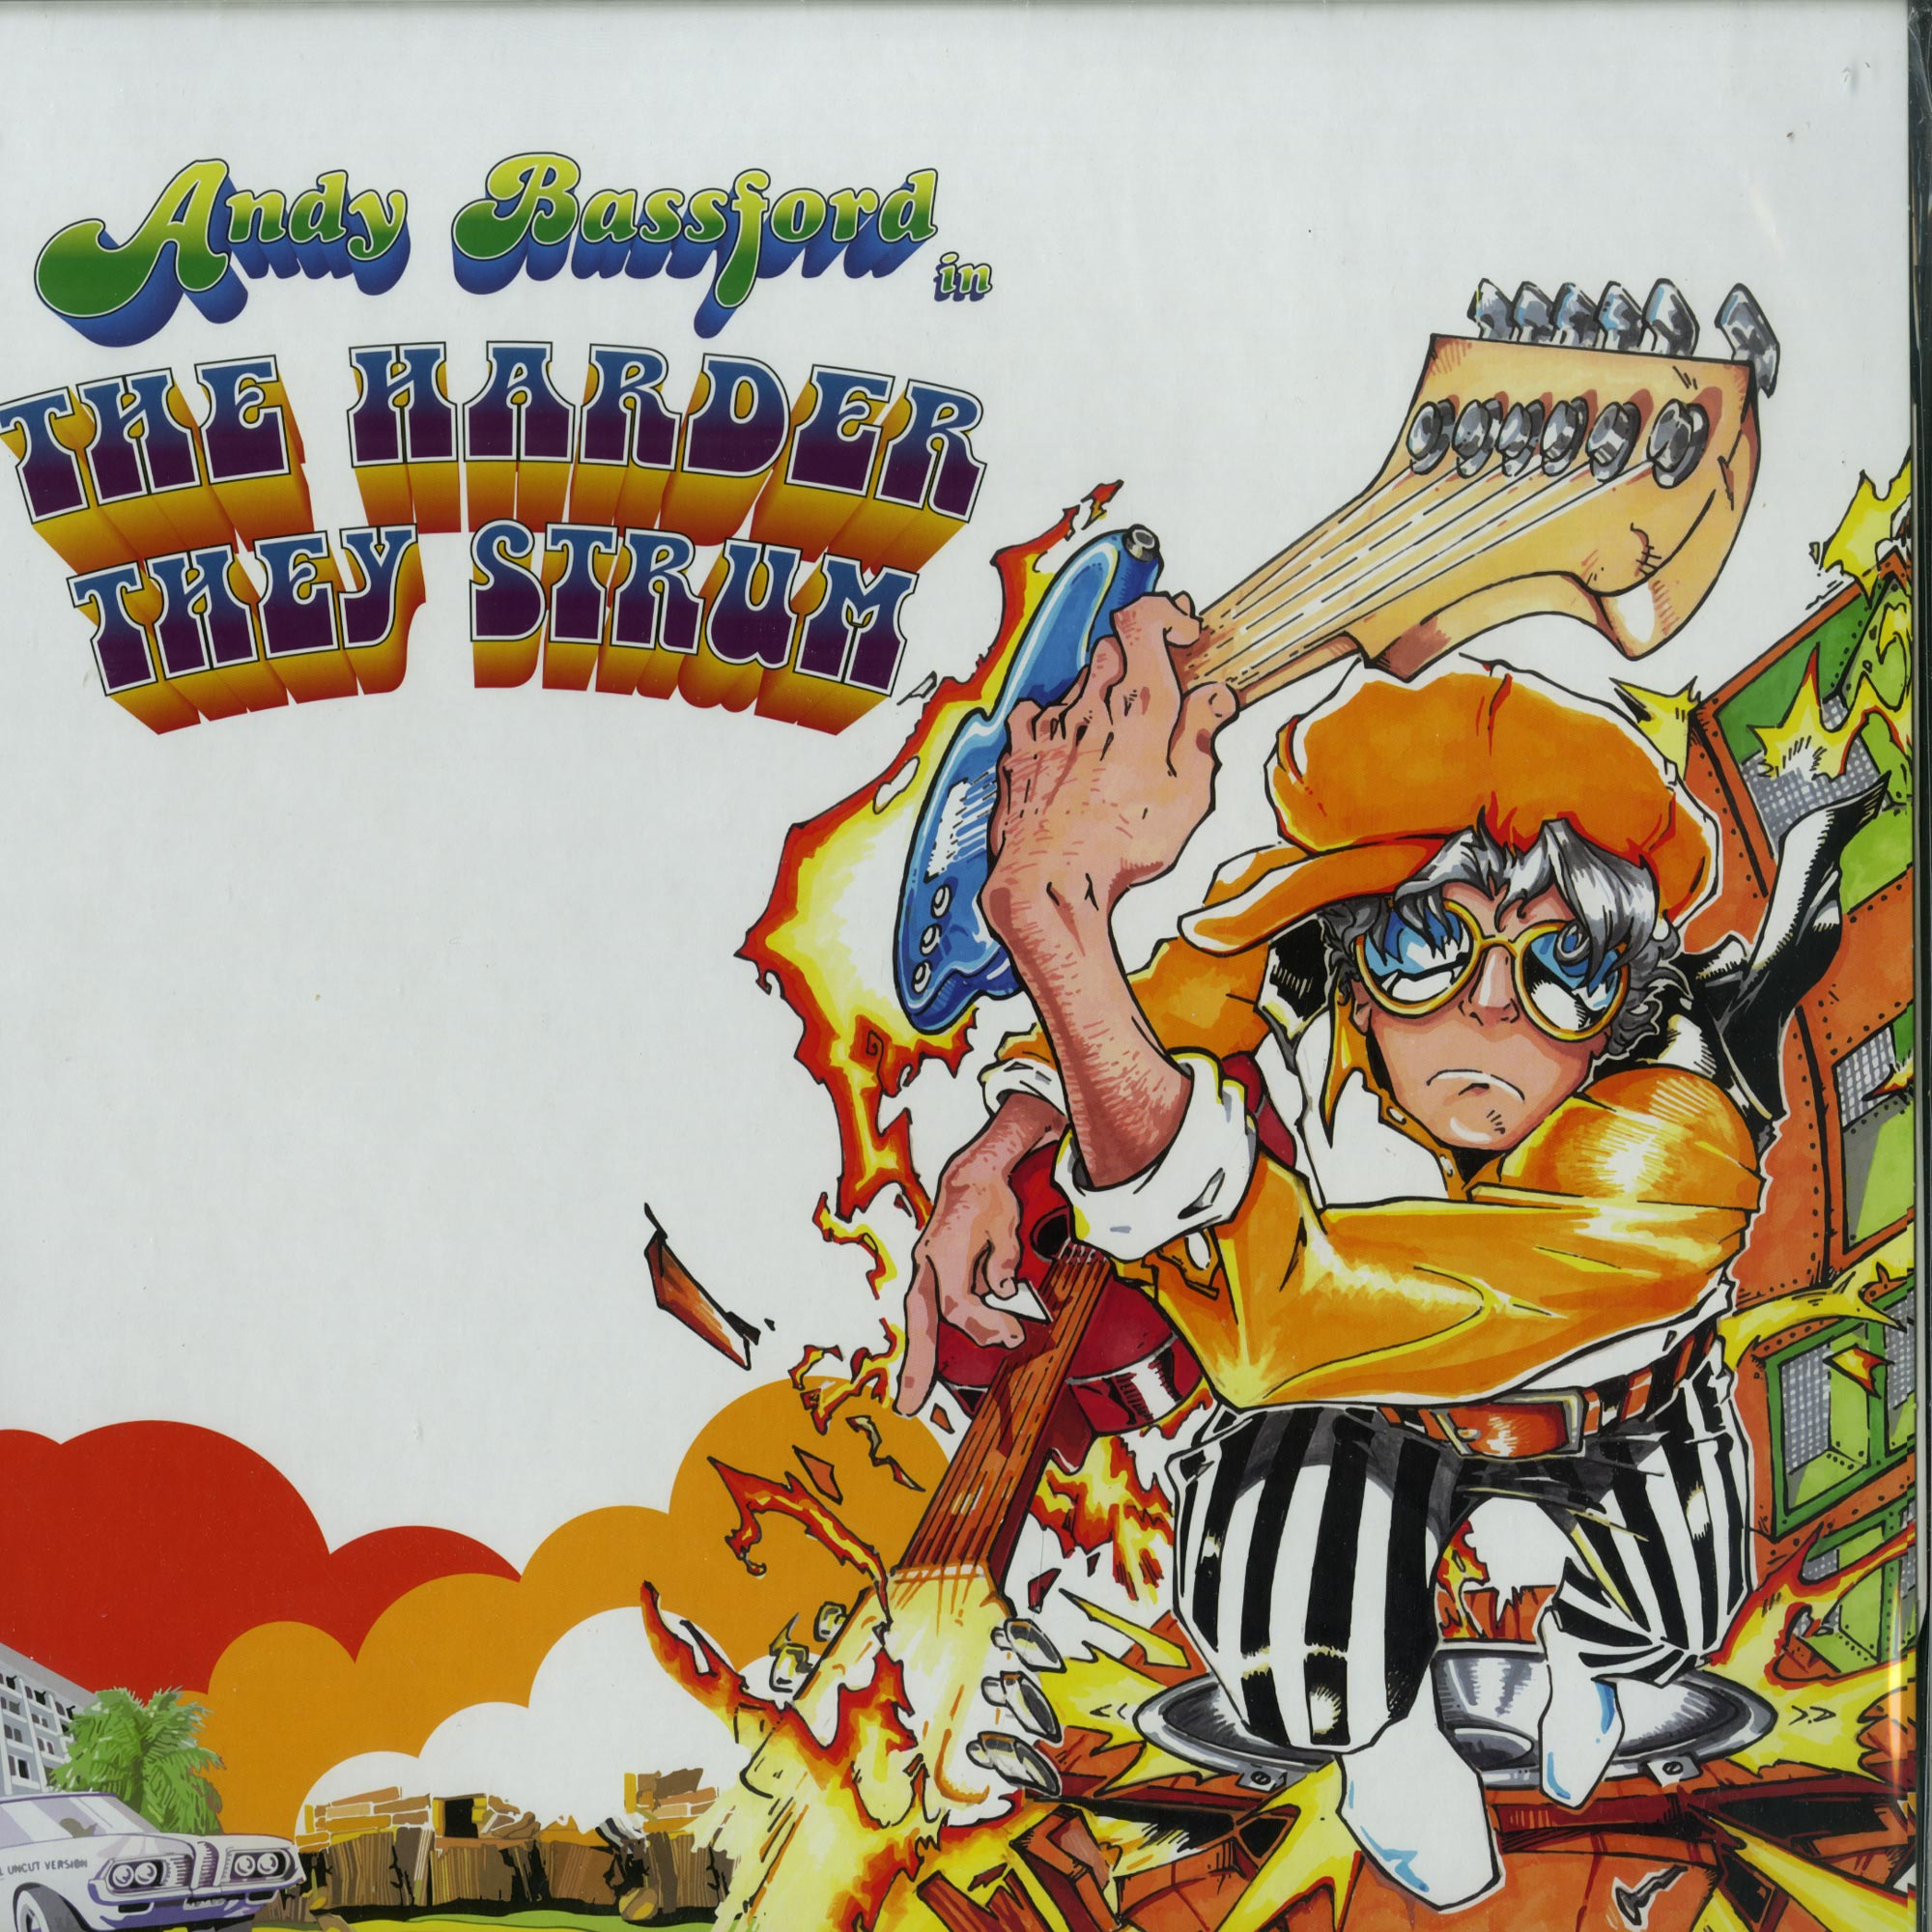 Andy Bassford - THE HARDER THEY STRUM